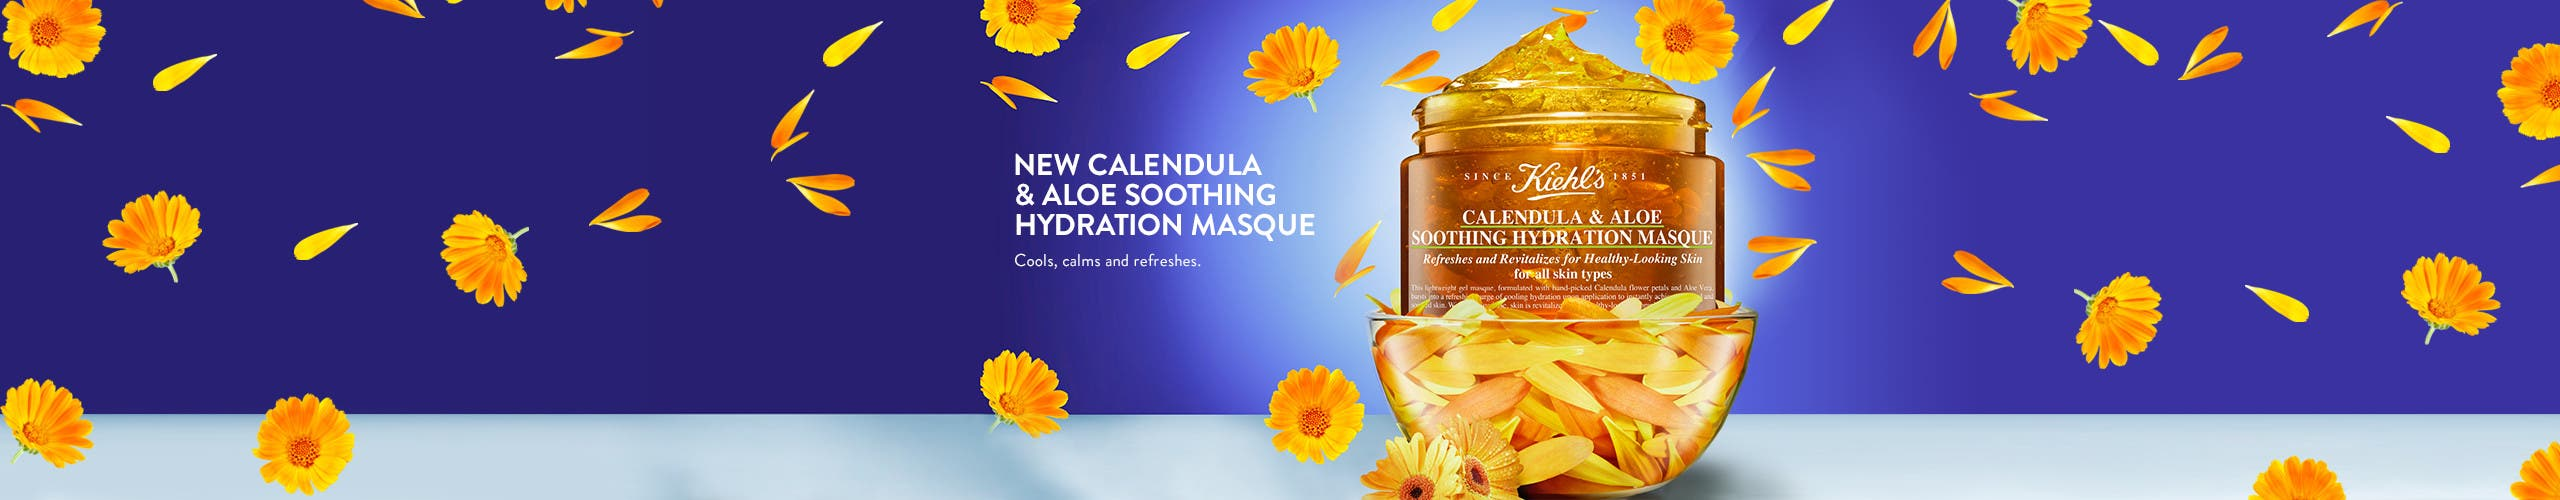 New Calendula and Aloe Soothing Hydrating Masque